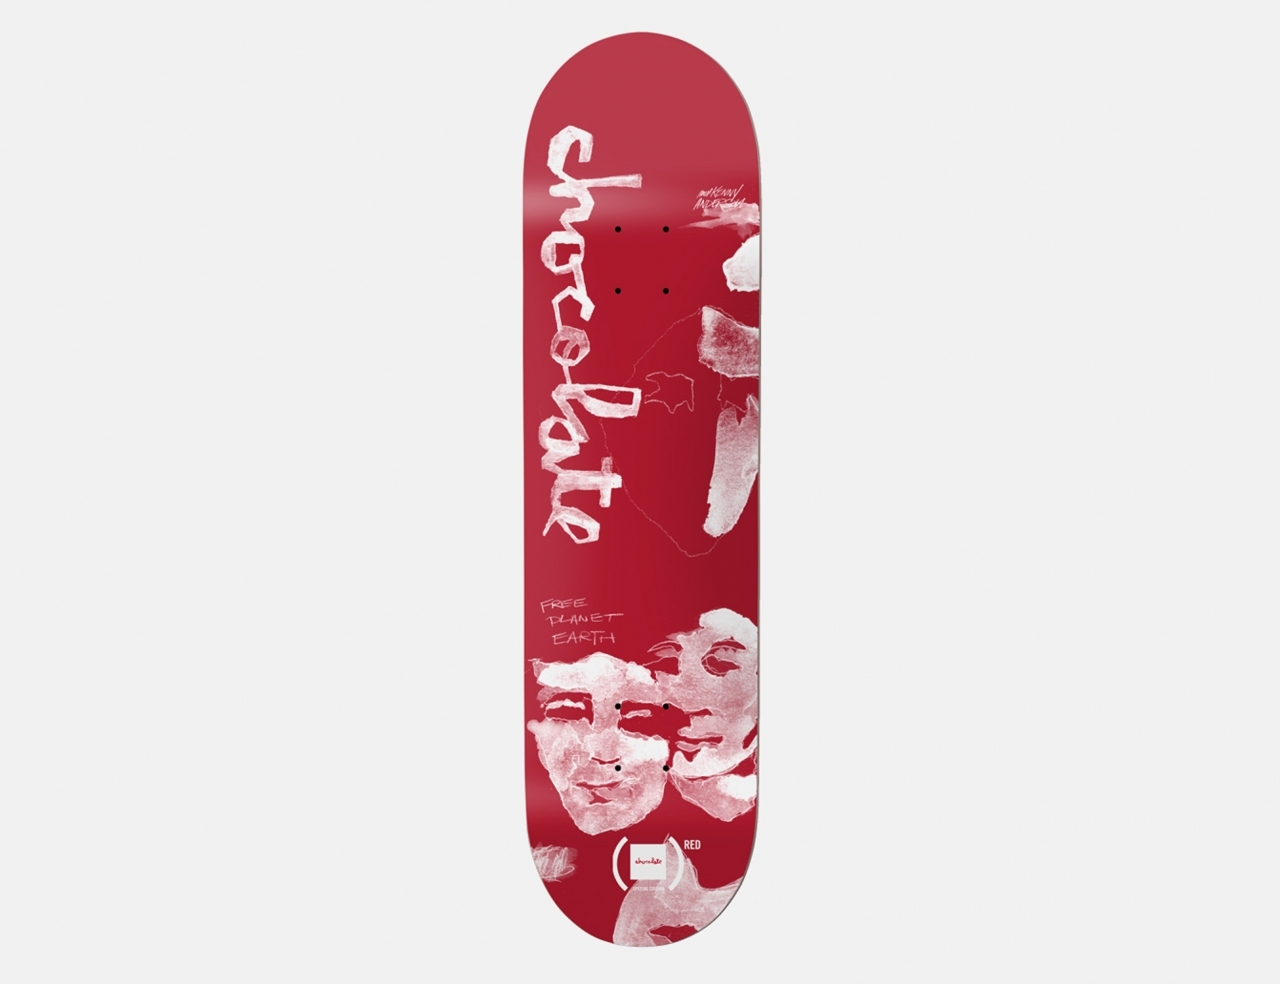 Chocolate Anderson Product V2 8.5 Deck